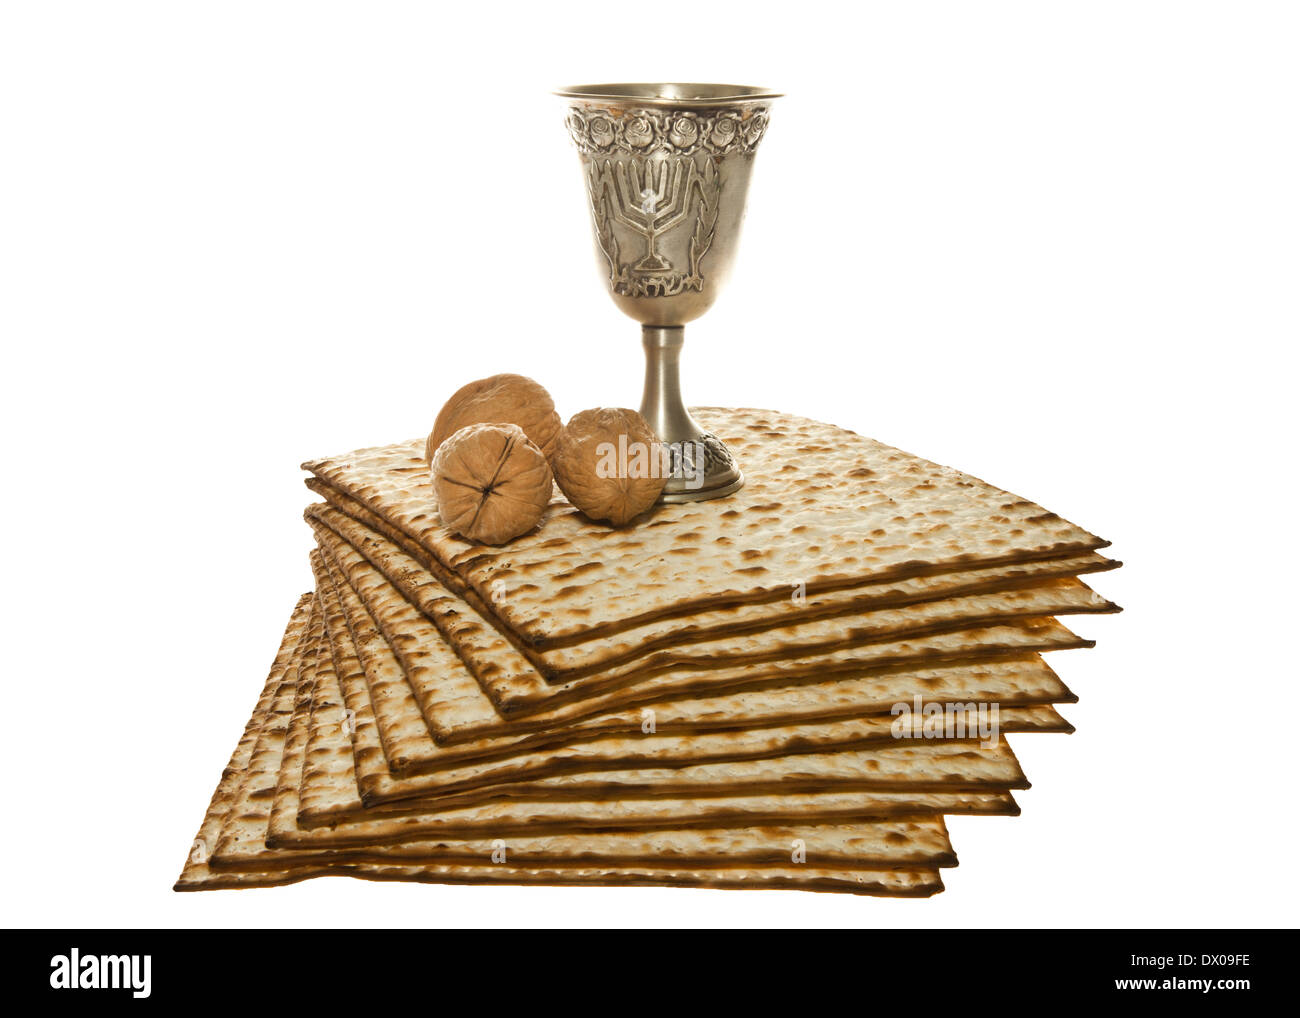 Matzoth, silver Kiddush cup and walnuts for Passover seder - Stock Image